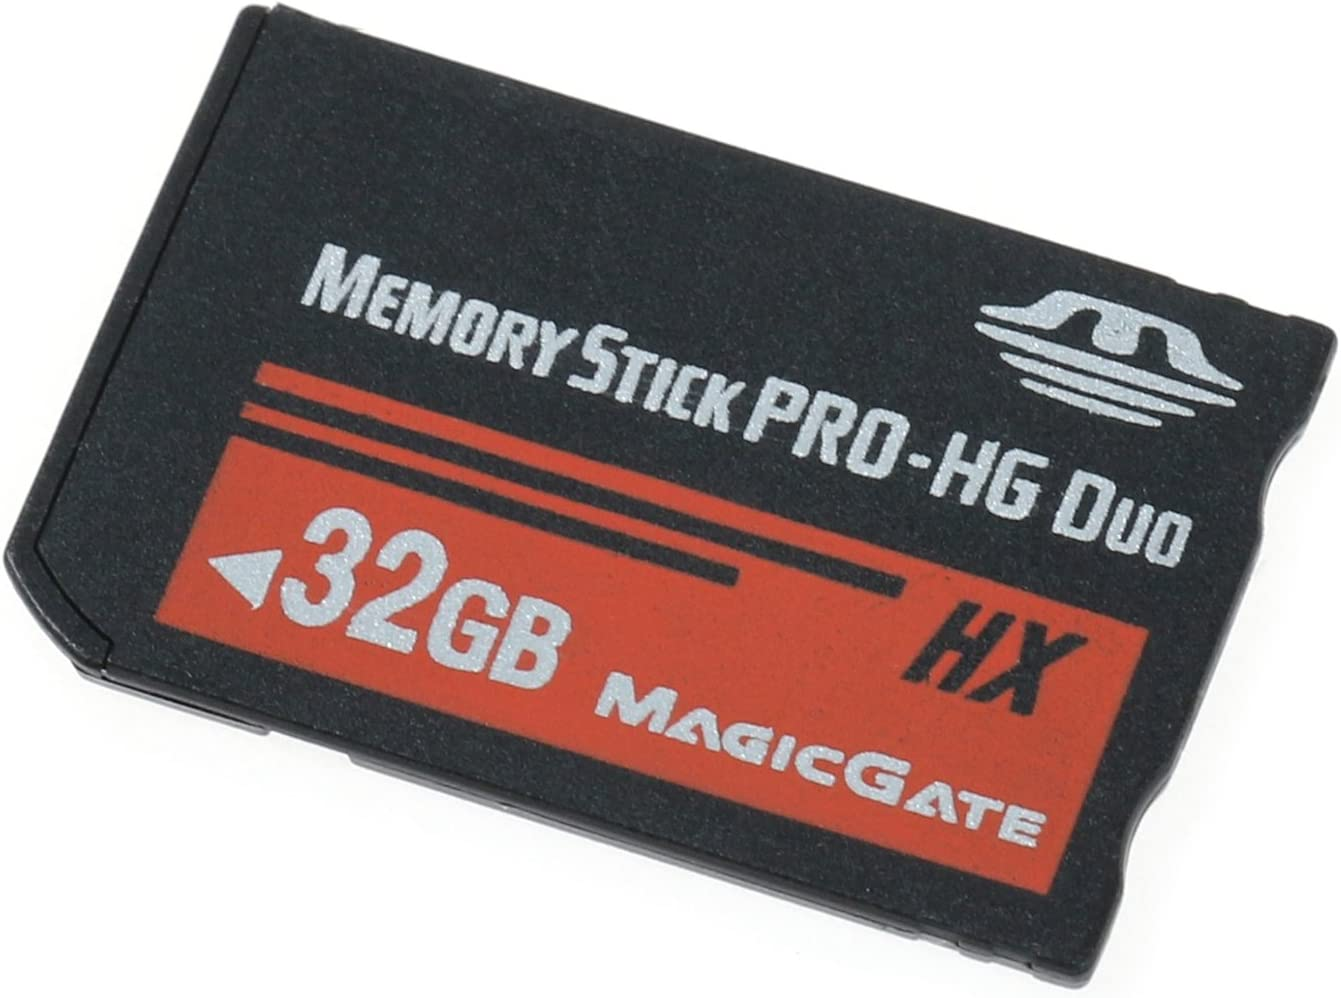 LICHIFIT 32GB Memory Stick MS Pro Duo Memory Card for Sony PSP High-Speed High Capacity